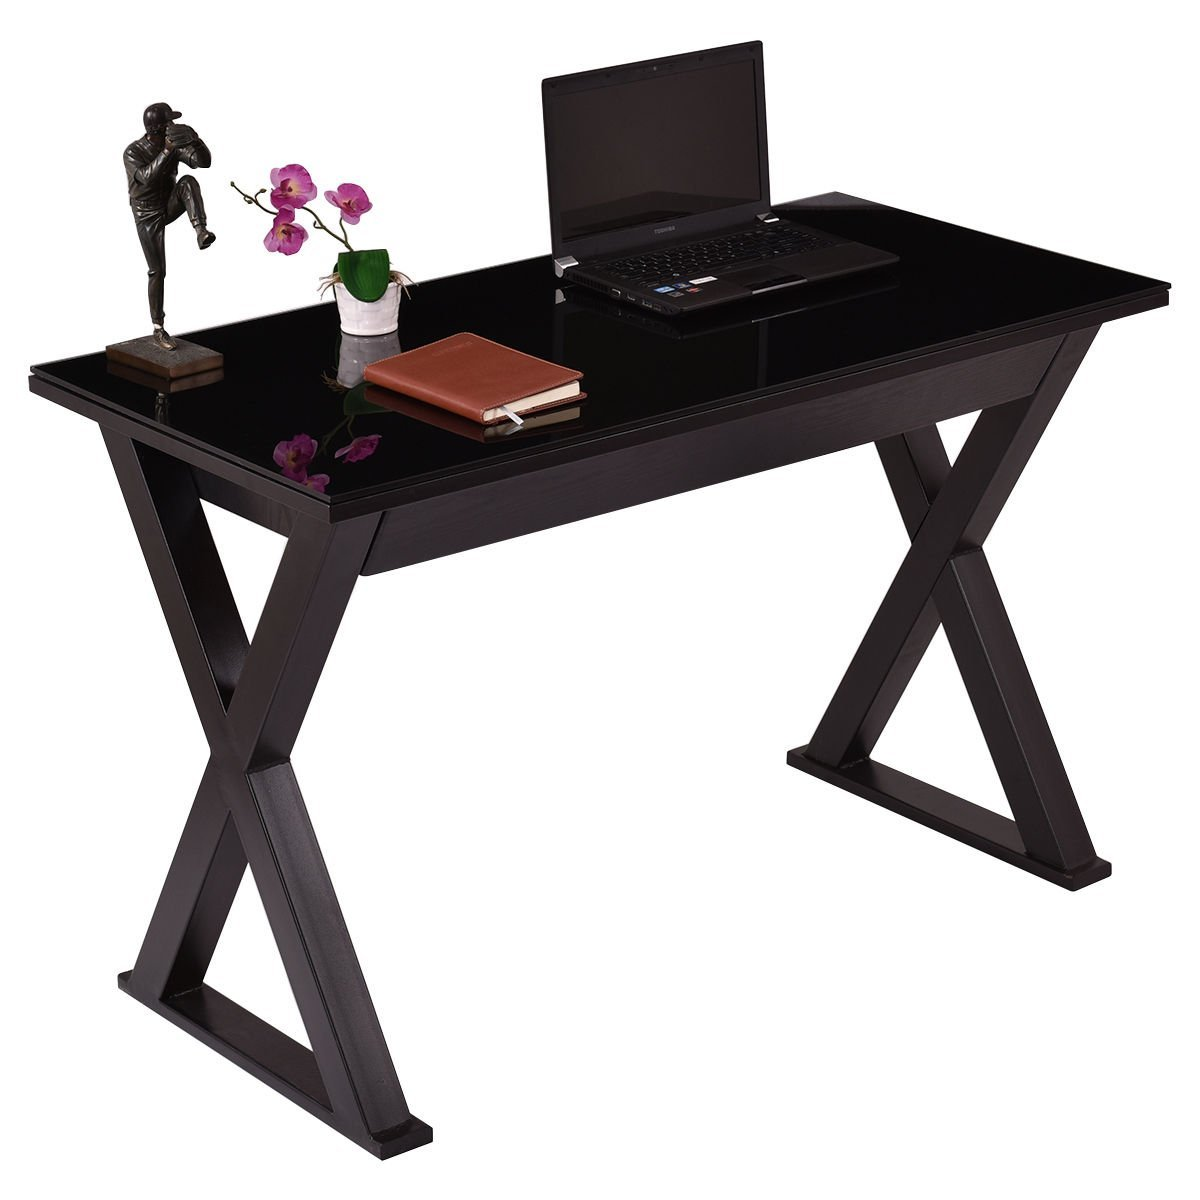 Tempered-Glass-Top-Computer-Desk-PC-Laptop-Table-Writing-Workstation-w-Drawer Tempered-Glass-Top-Computer-Desk-PC-Laptop-Table-Writing-Workstation-w-Drawer Tempered-Glass-Top-Computer-Desk-PC-Lapto